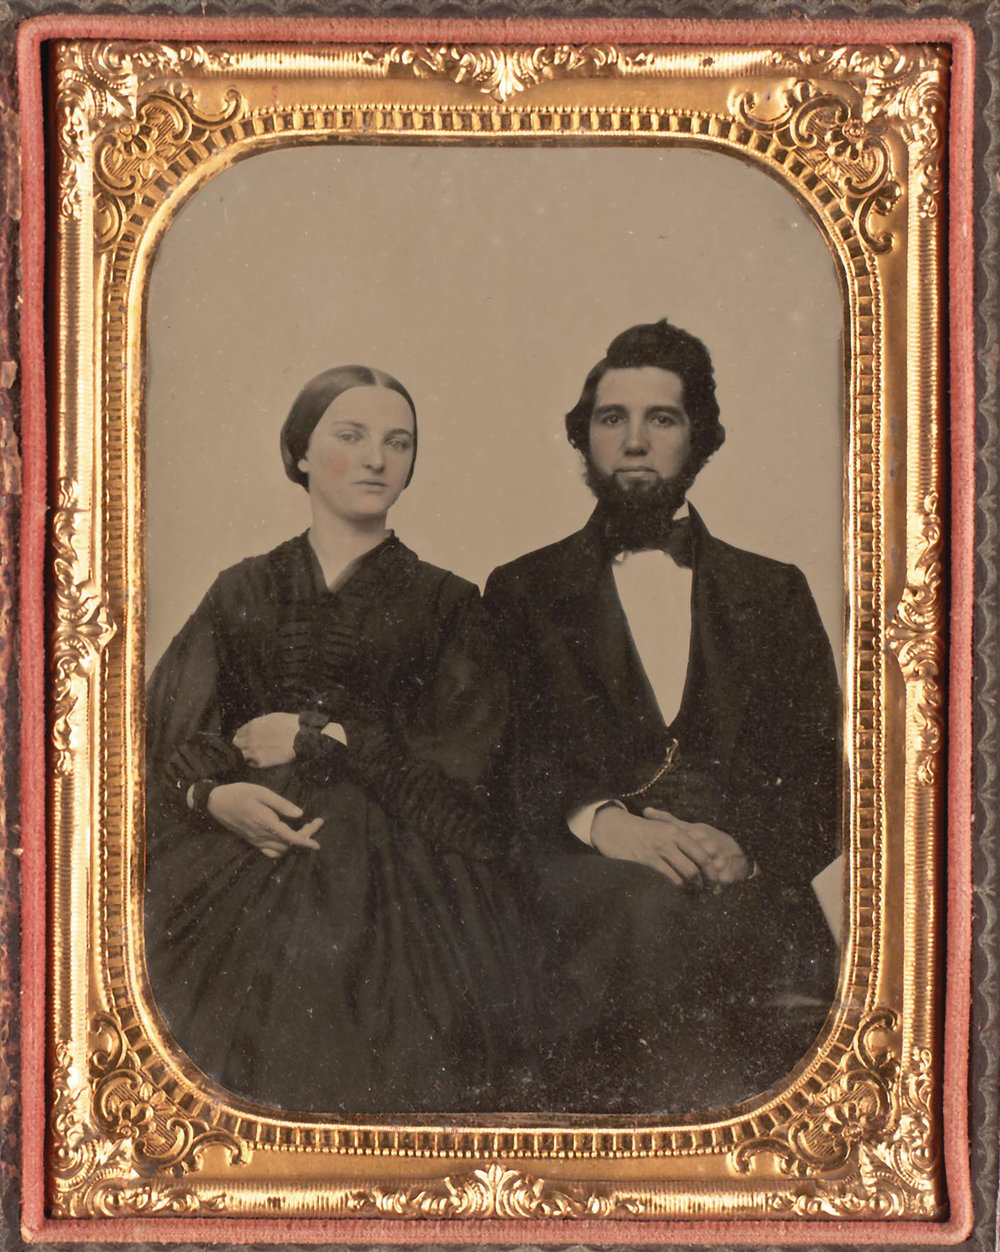 Sarah Frances and George W. Mead, c. 1859 (one year after marriage)